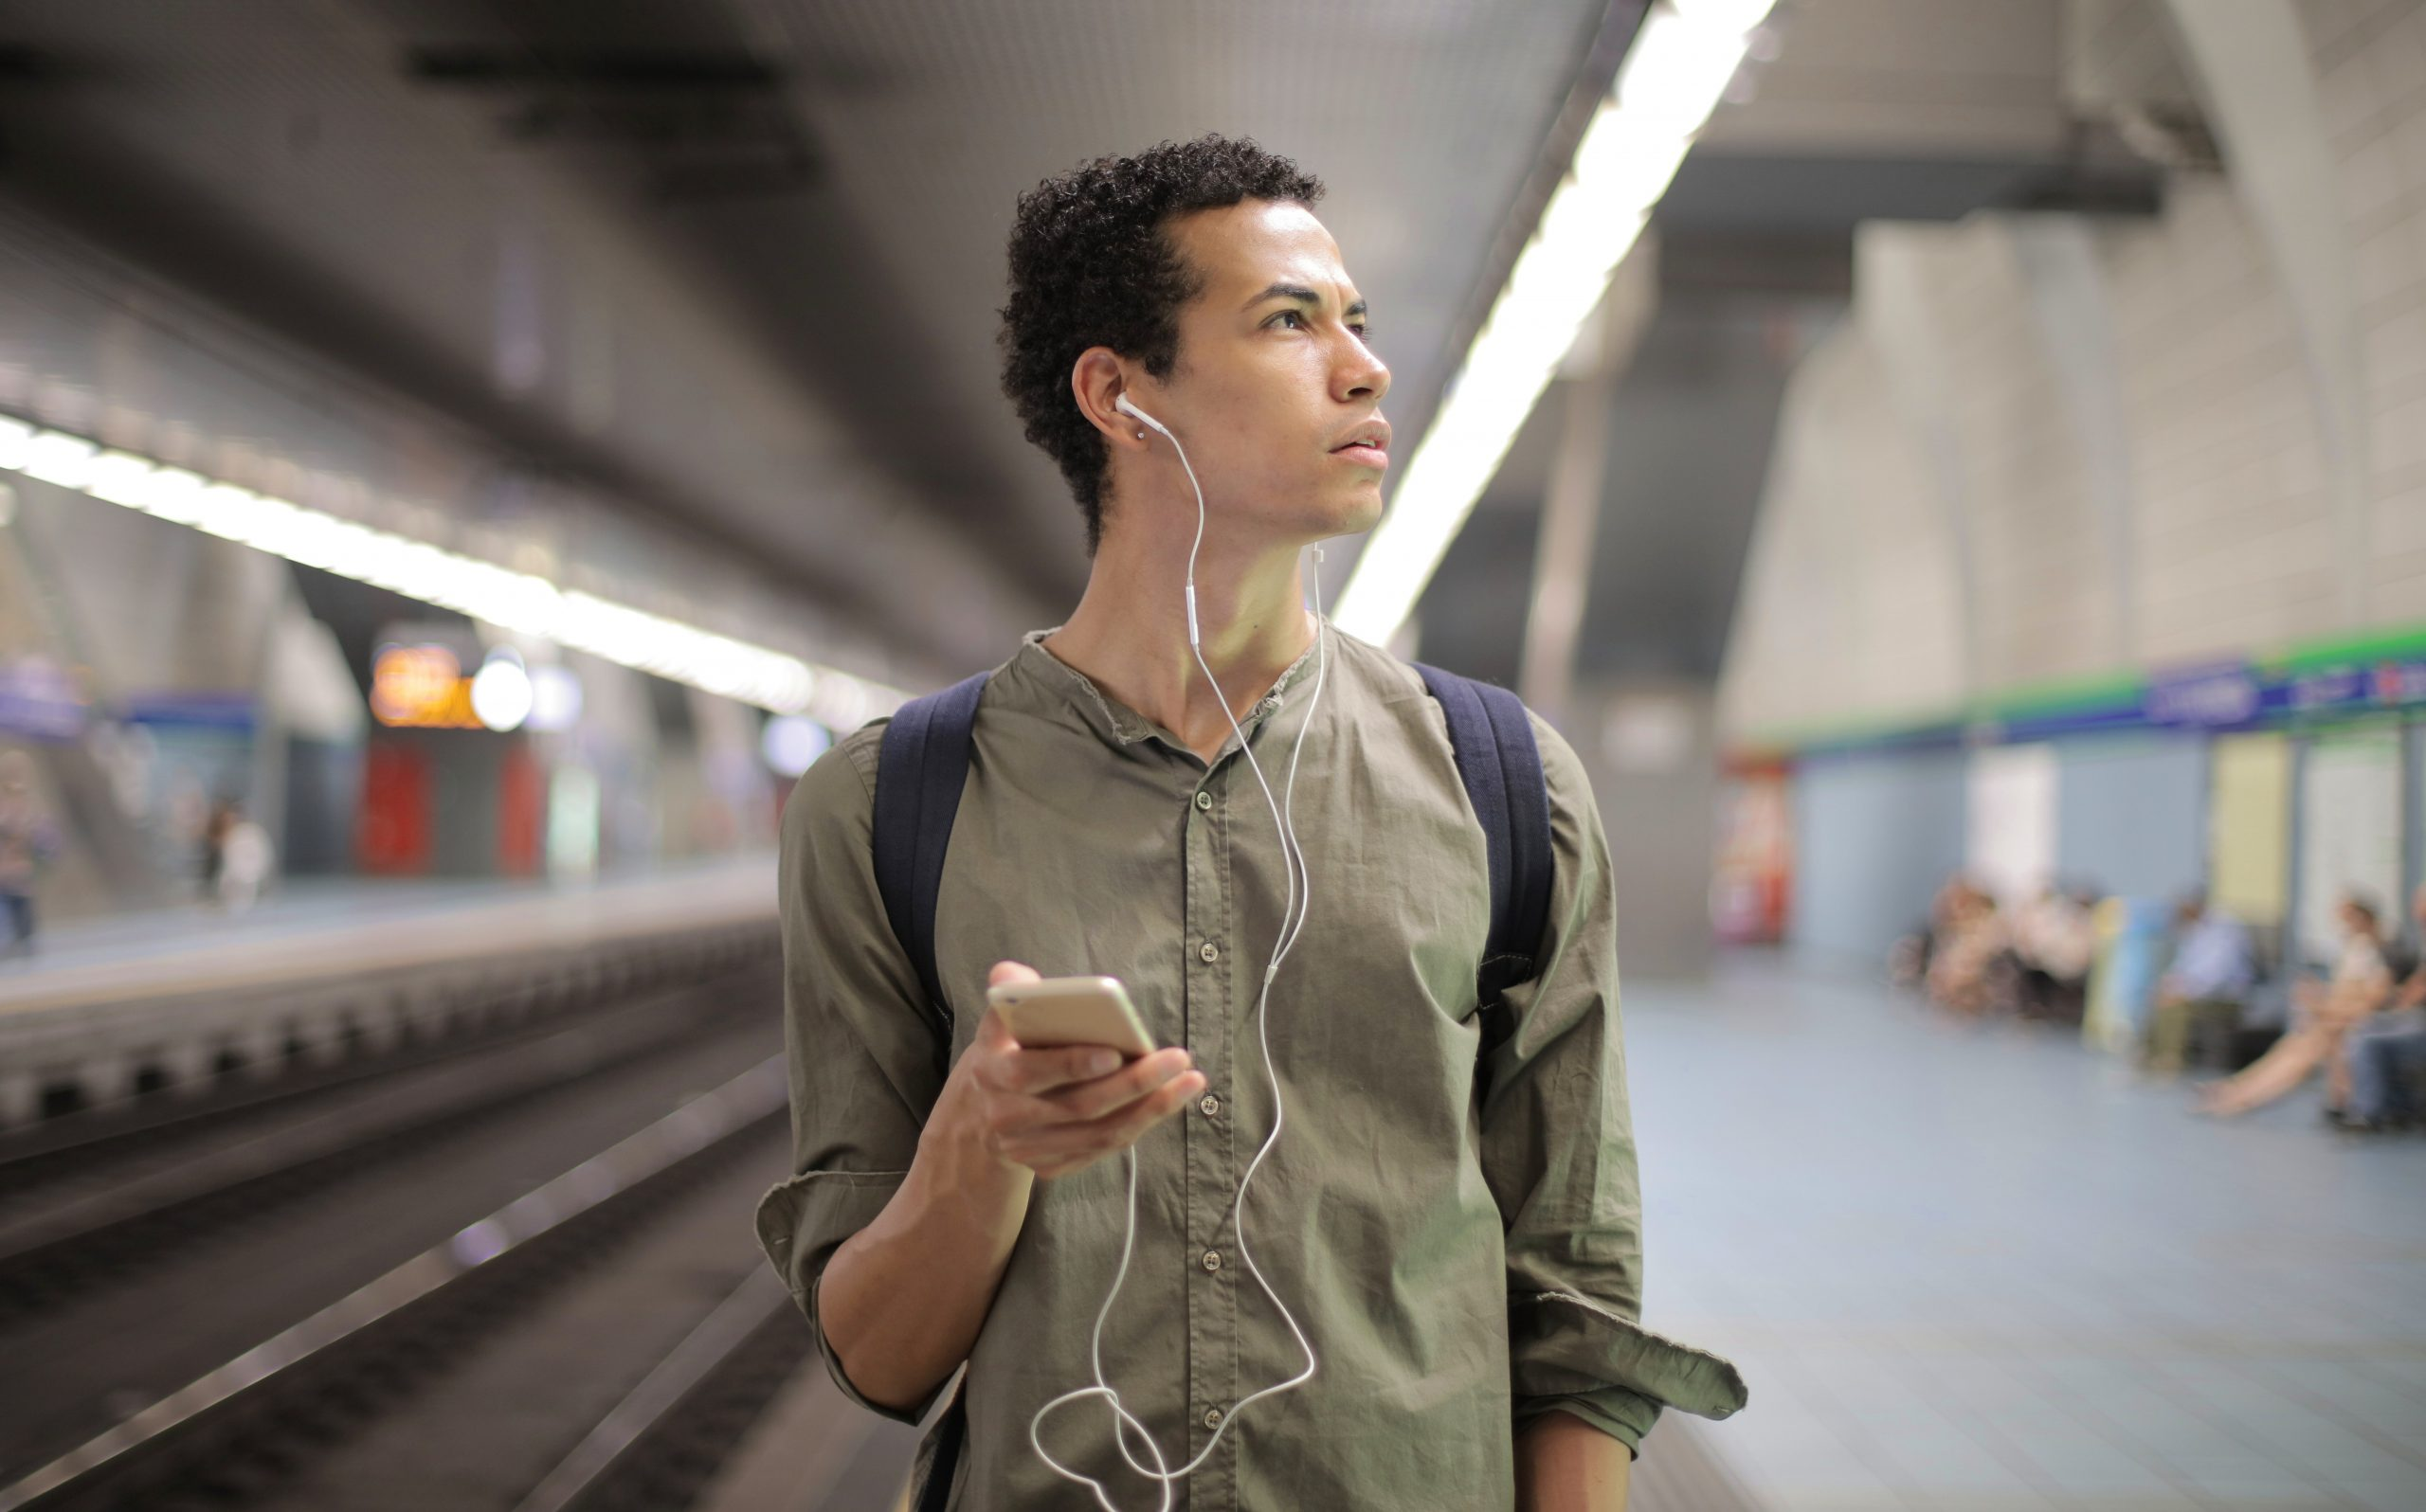 Person with phone and headphones in underground station